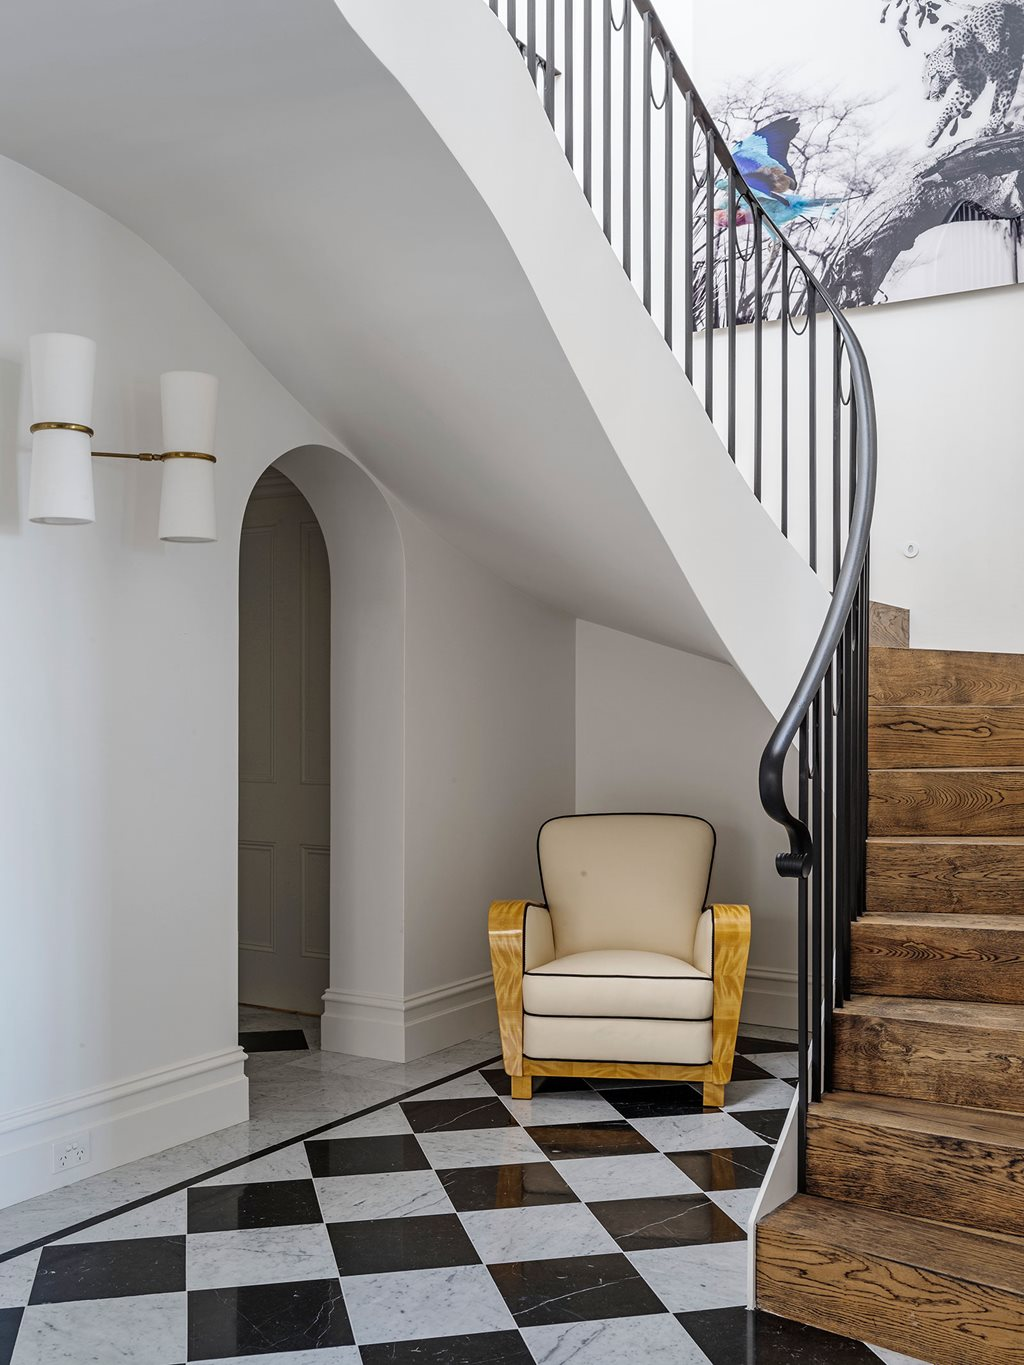 Luigi Rosselli Tummy Tuck Gives Old Queen Anne Home New